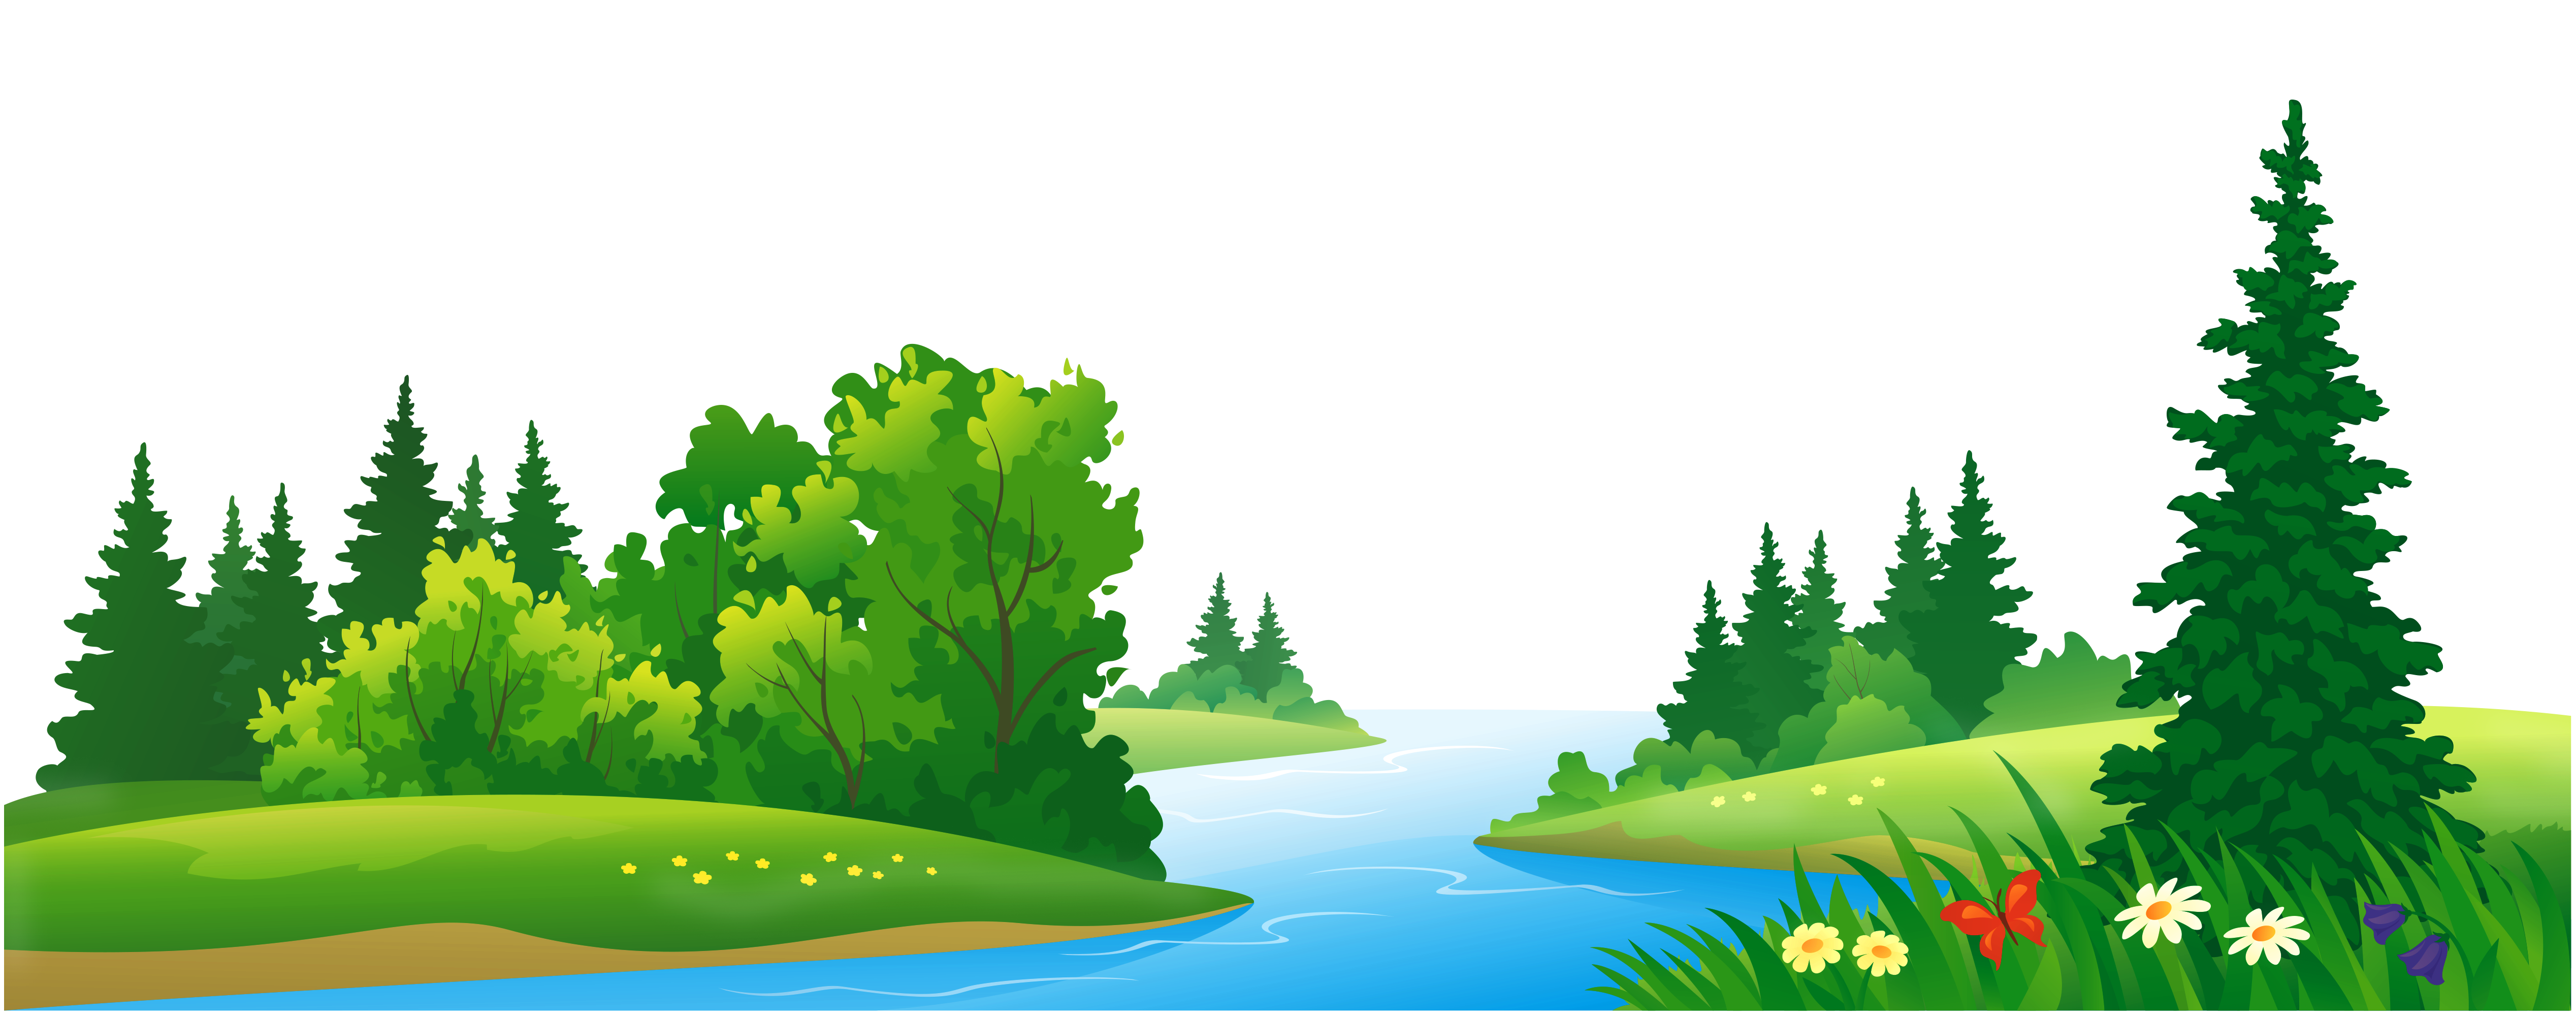 Grass lake and trees. Forest clipart graphic freeuse library